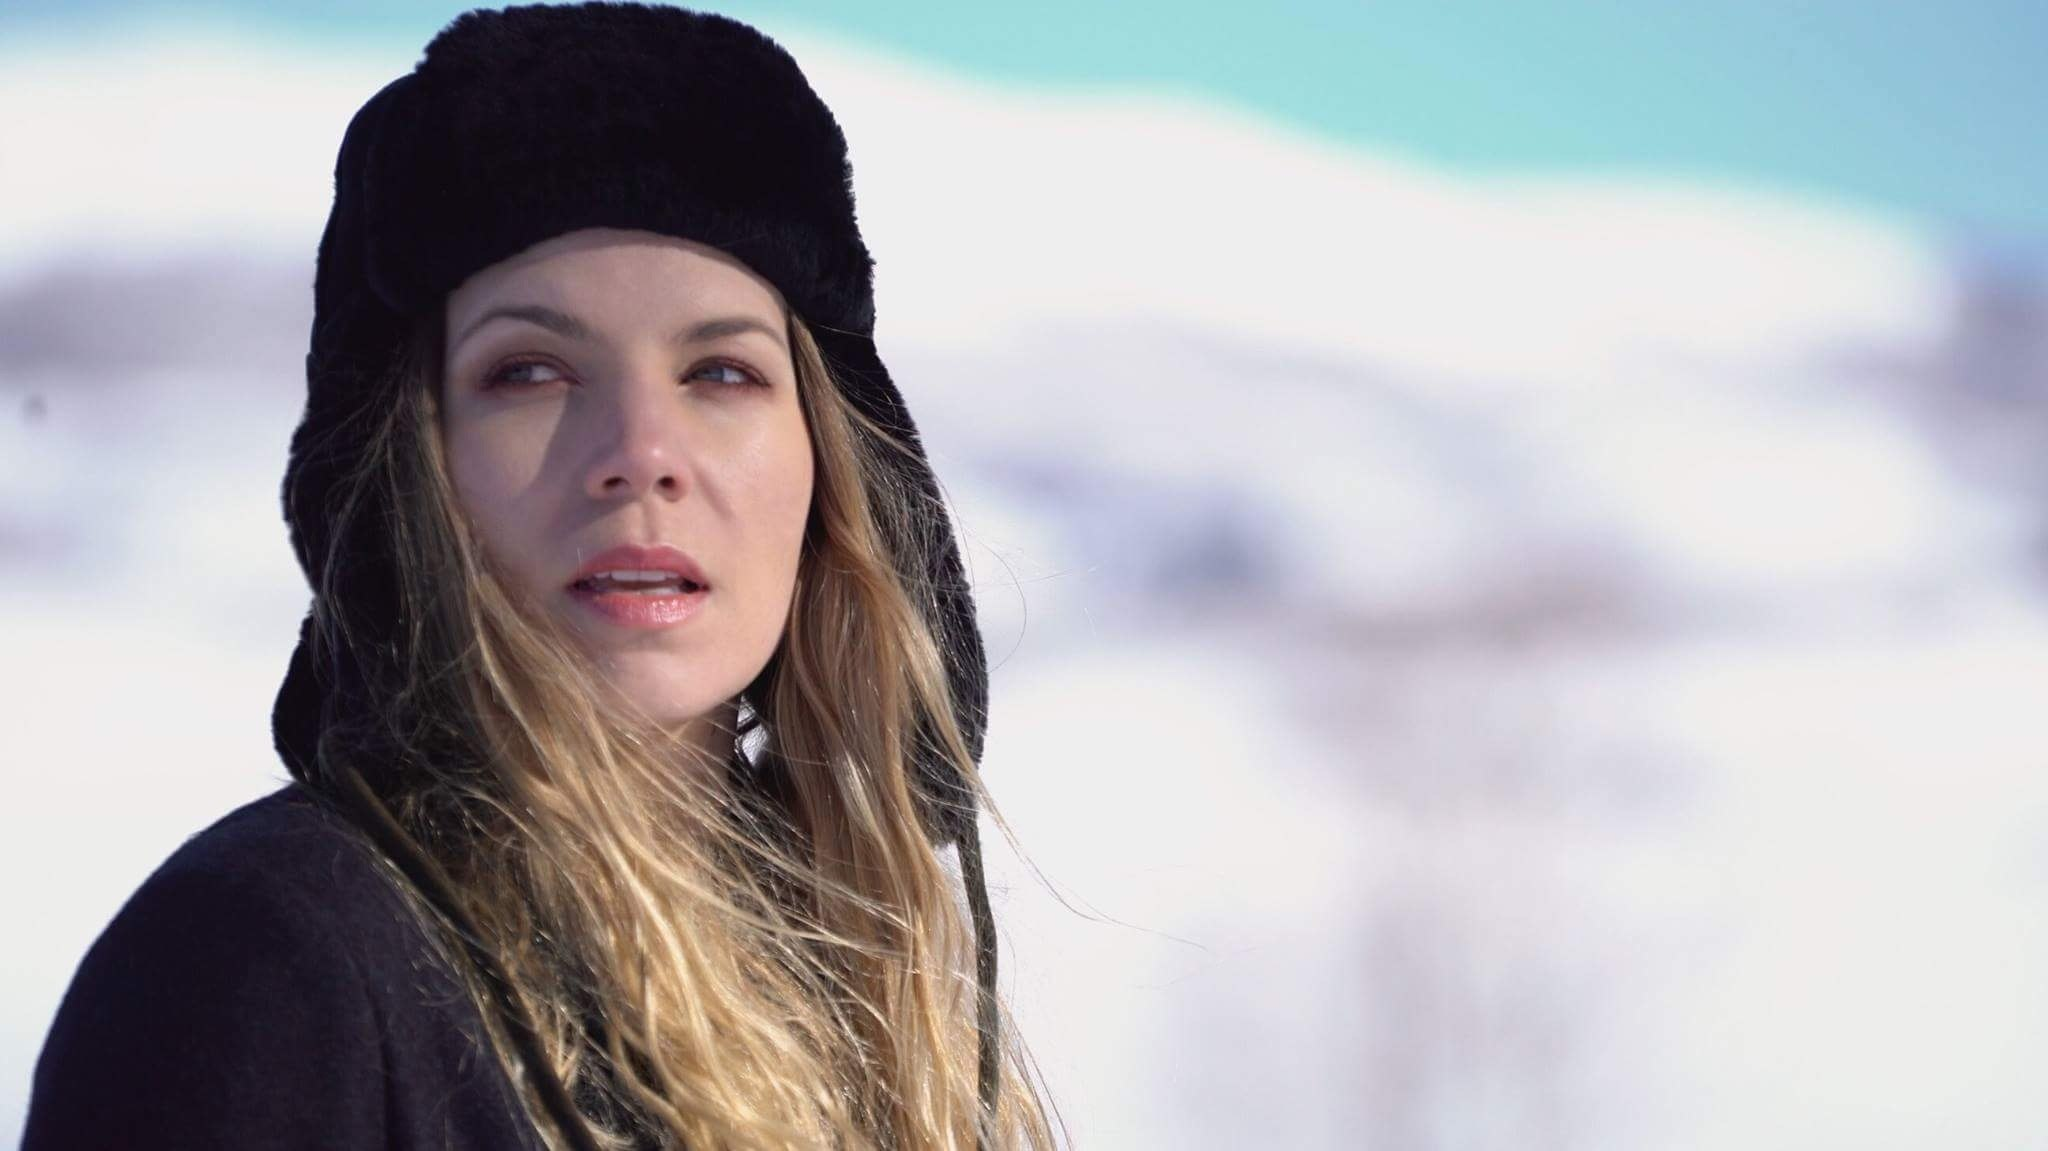 Skylar Grey Wallpapers Hd